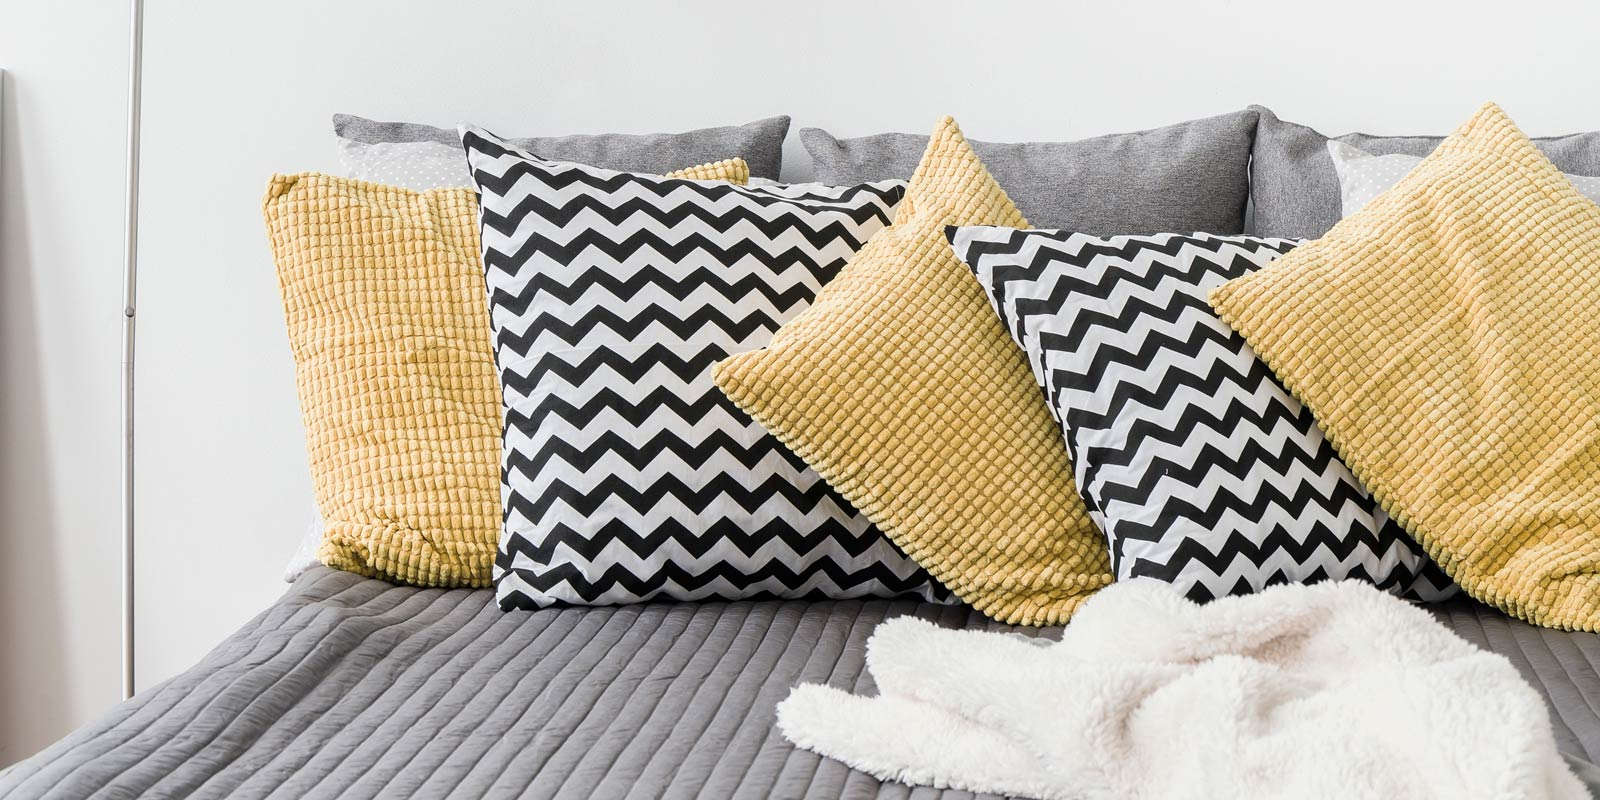 Decorative Cushions For Bedrooms : Decorative cushions for the bedroom Australia Simply Cushions